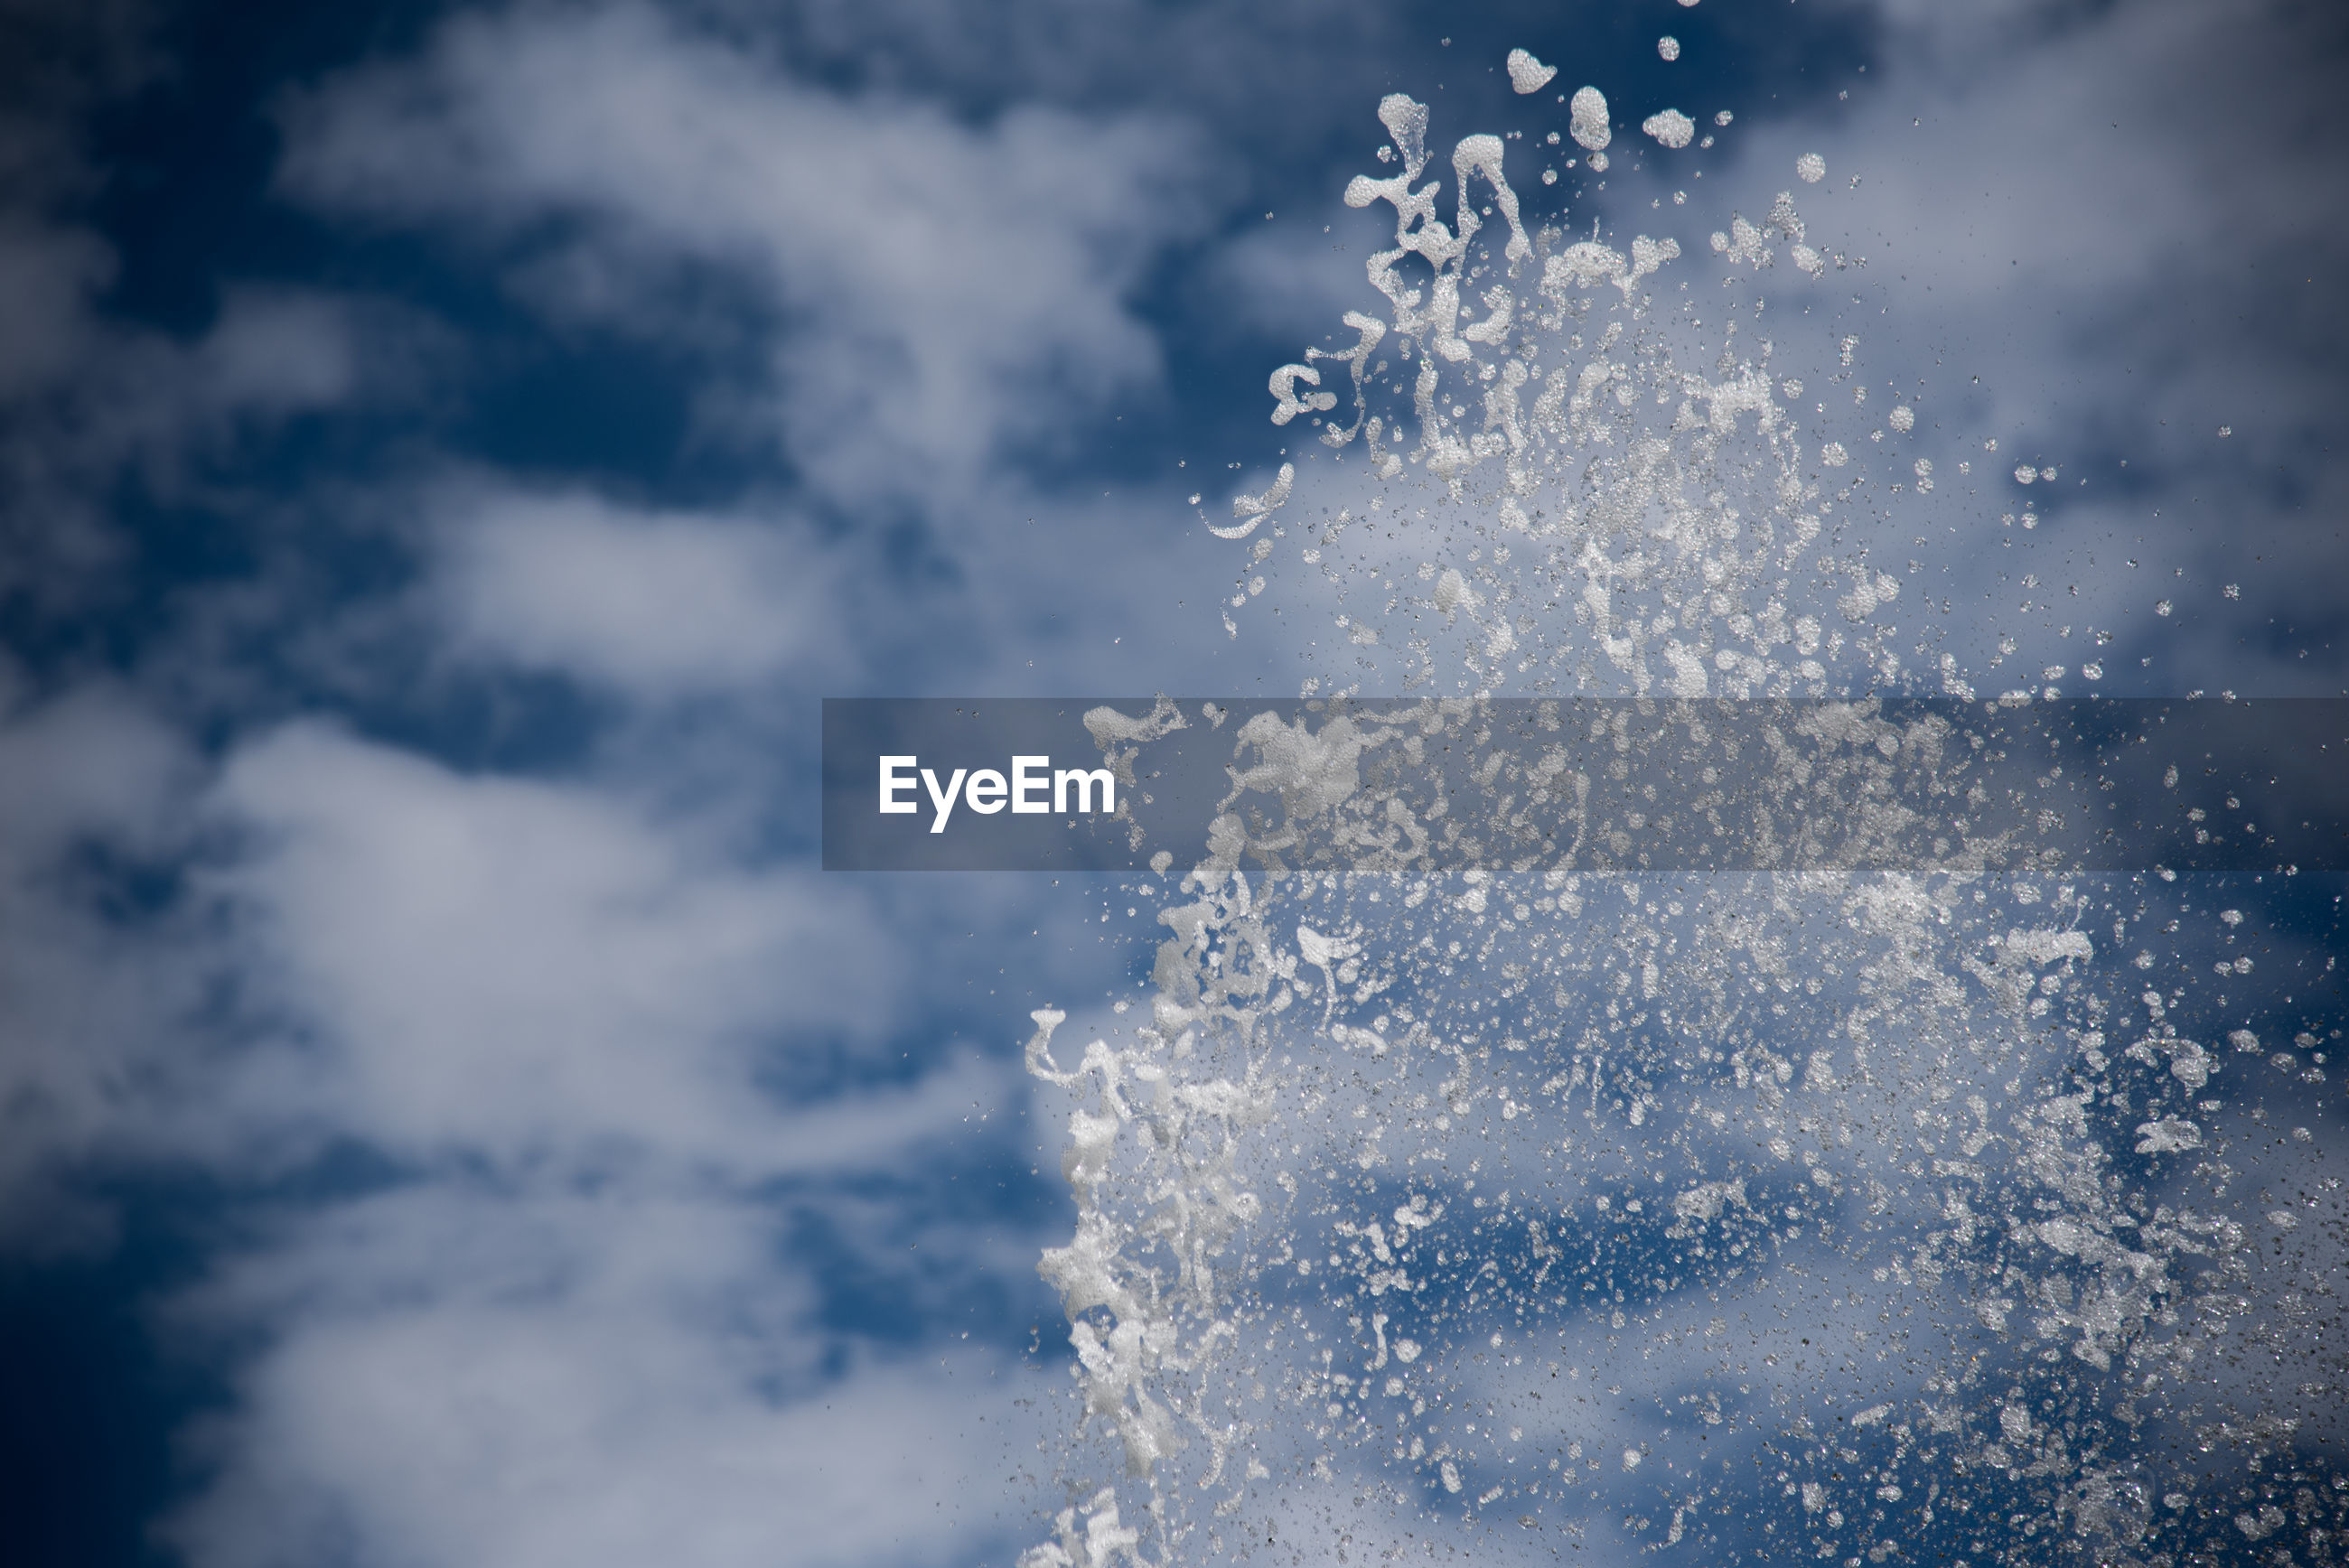 Close-up of spraying water against clouds